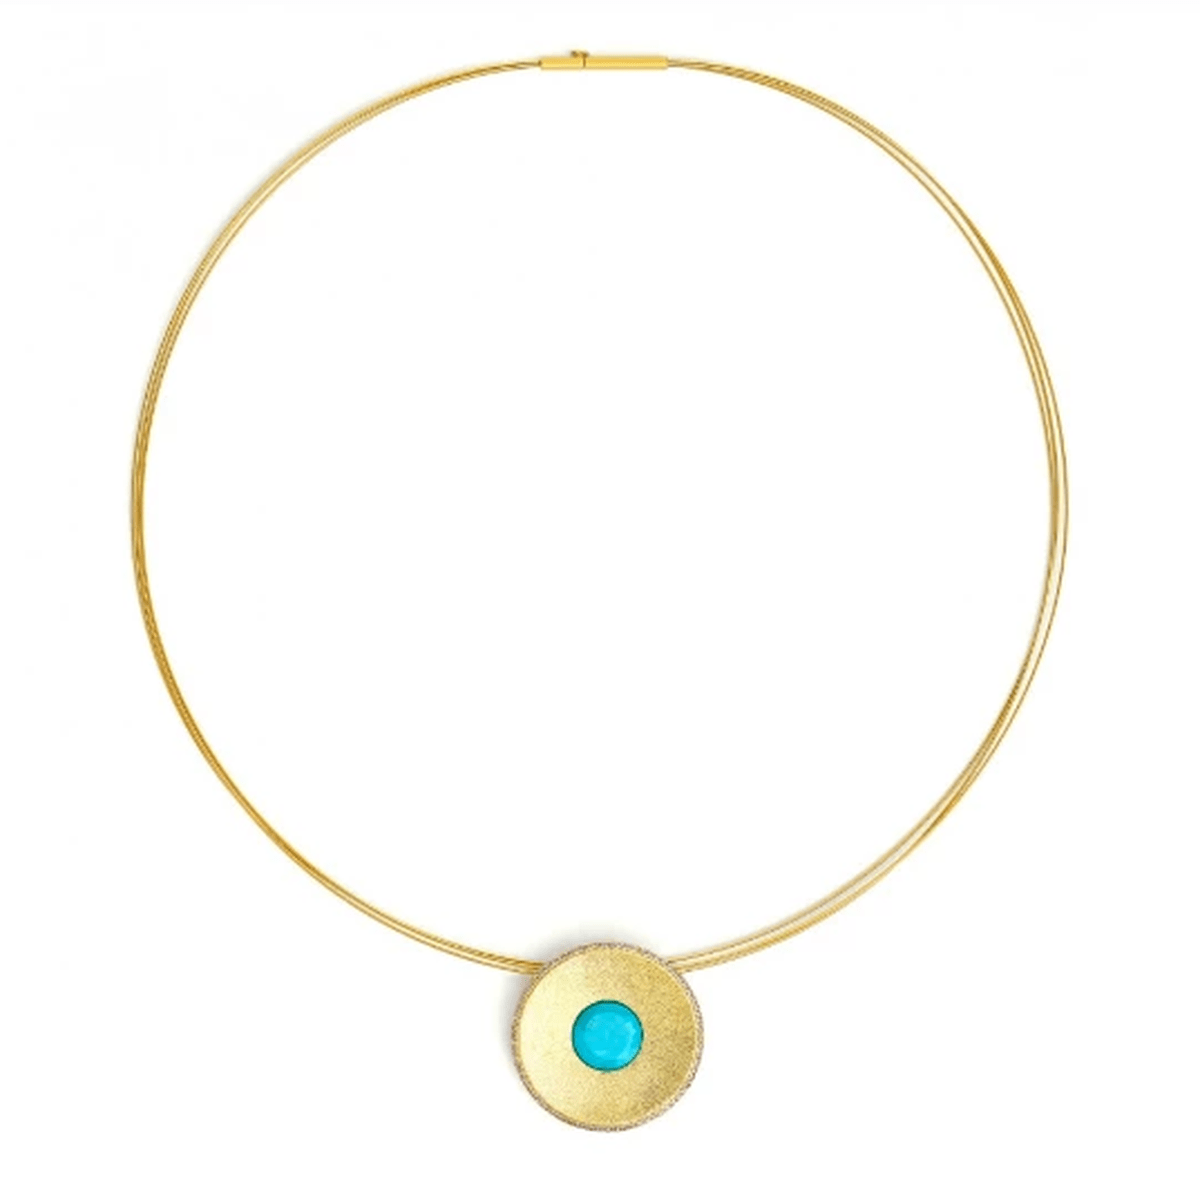 Celanni Turquoise Necklace - 87858256-Bernd Wolf-Renee Taylor Gallery